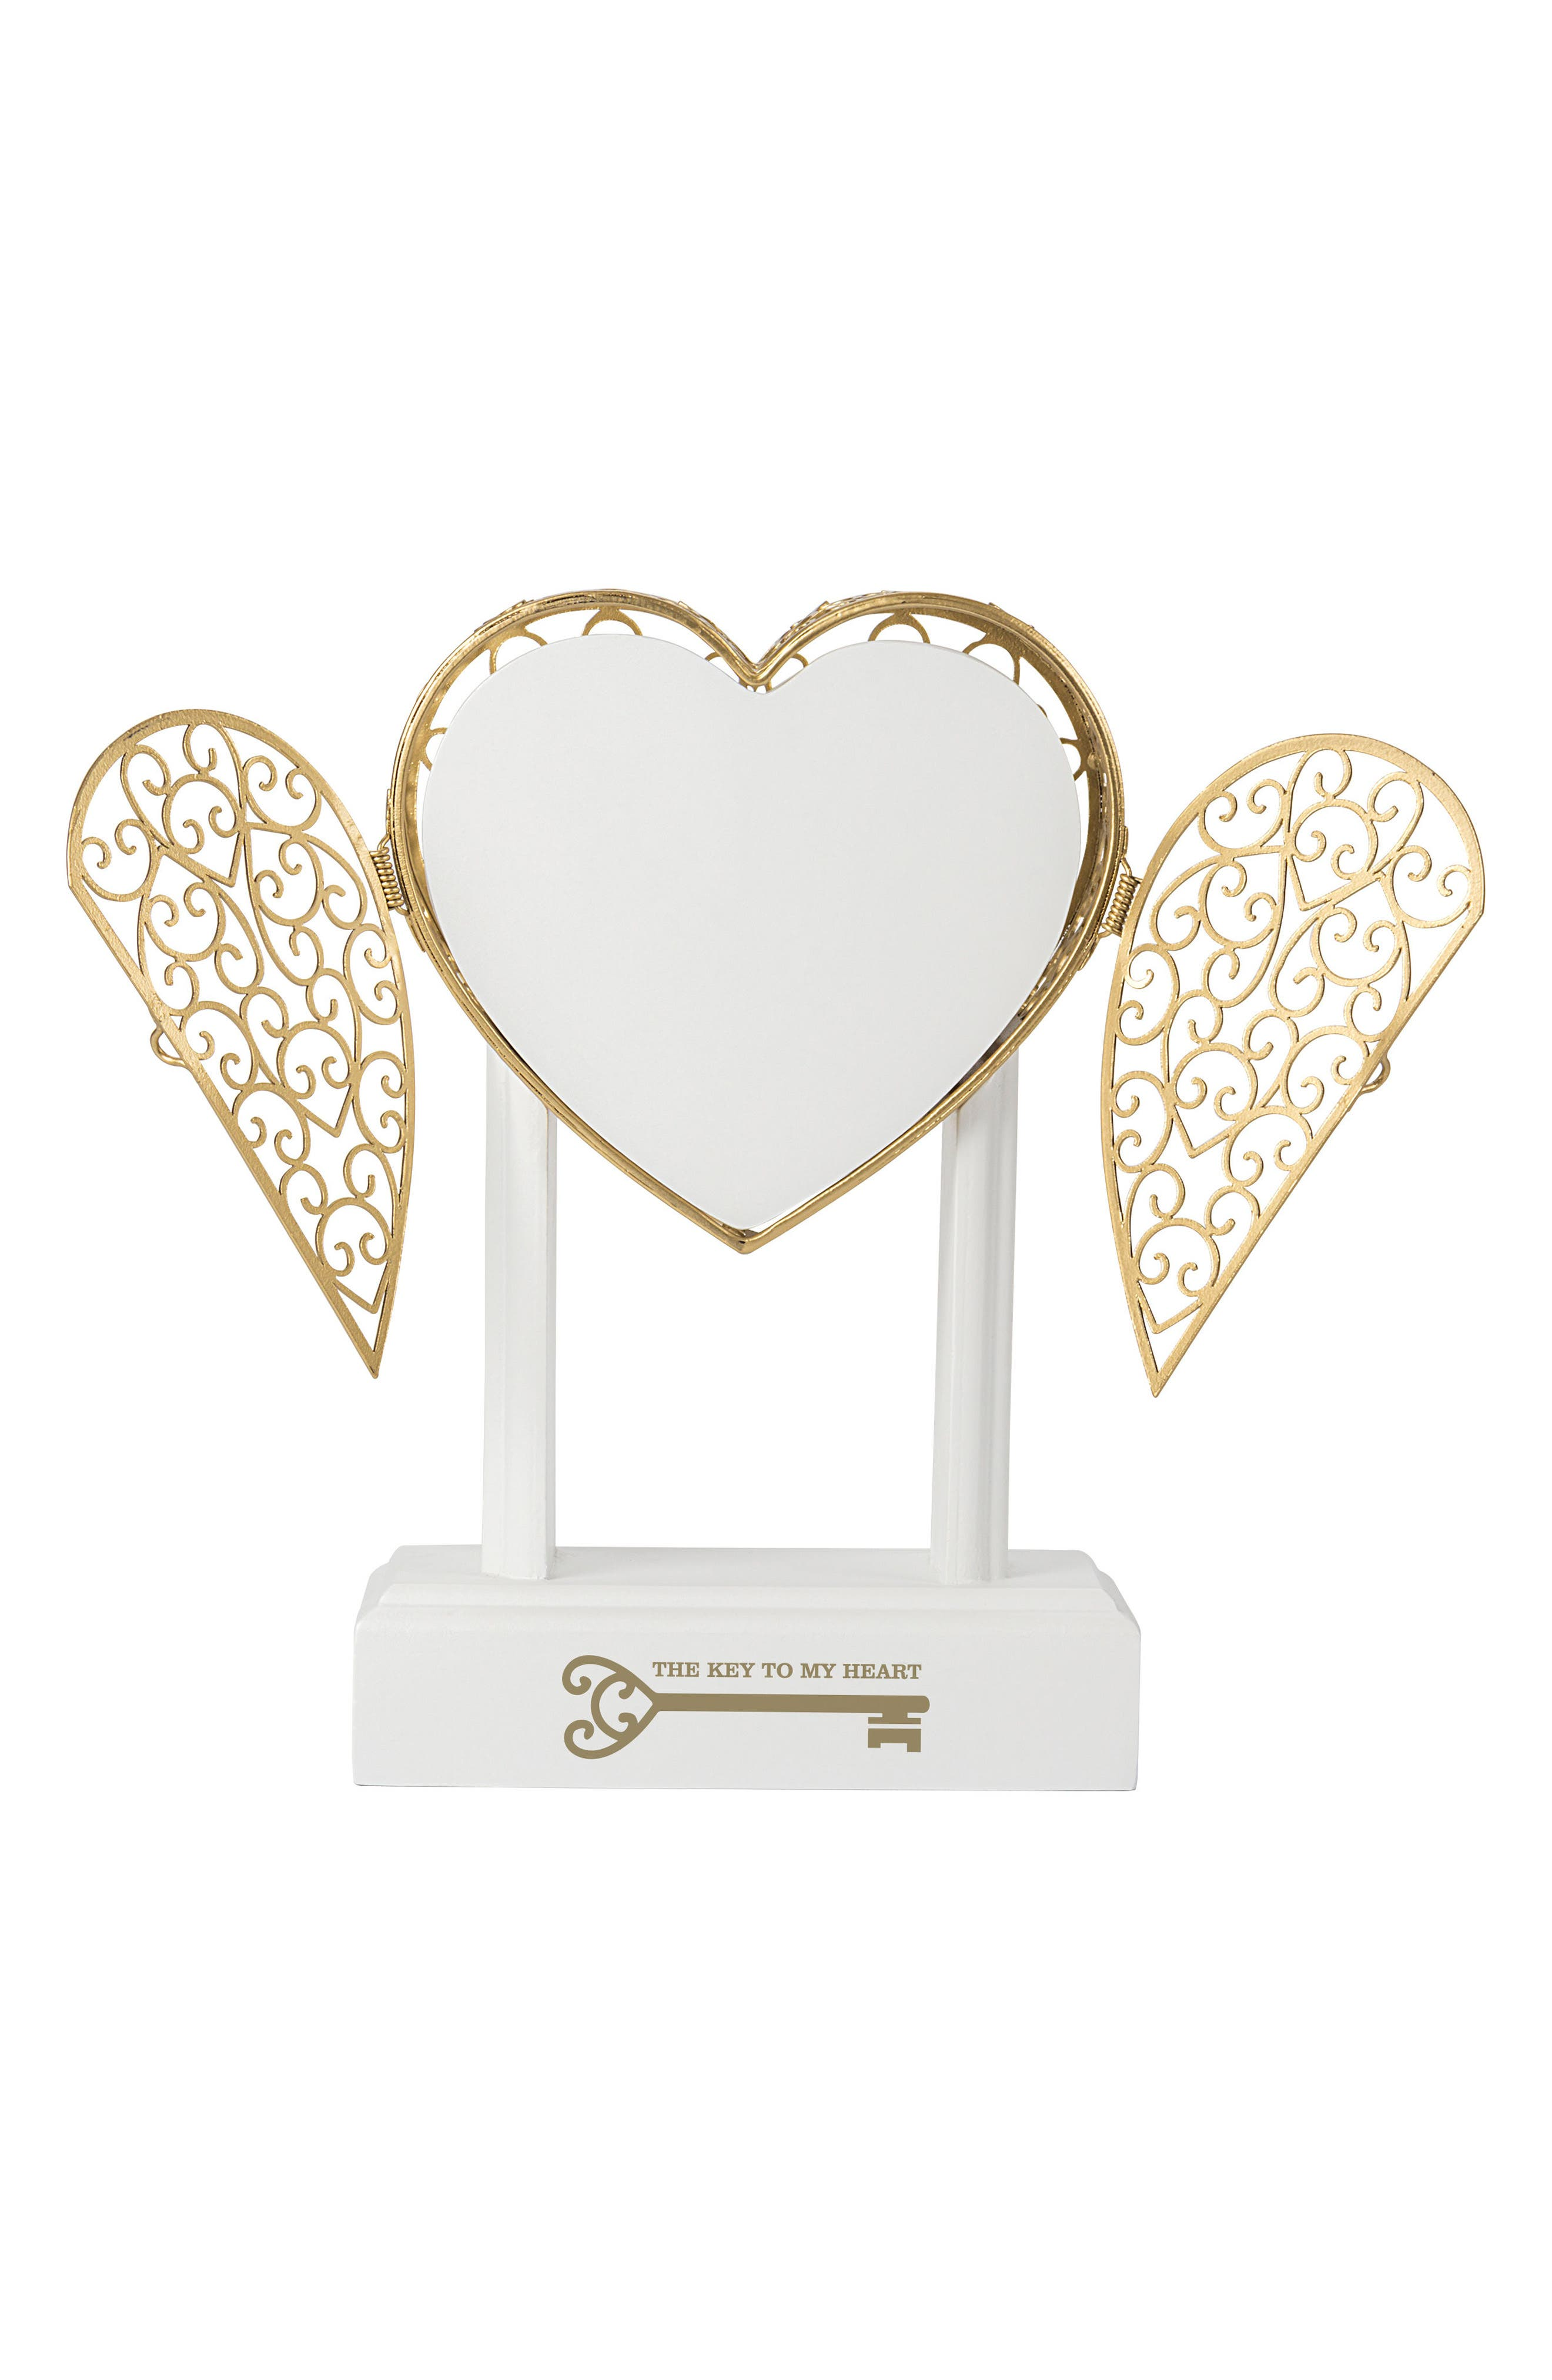 Key To My Heart Vow Unity Keepsake Box,                             Alternate thumbnail 5, color,                             710